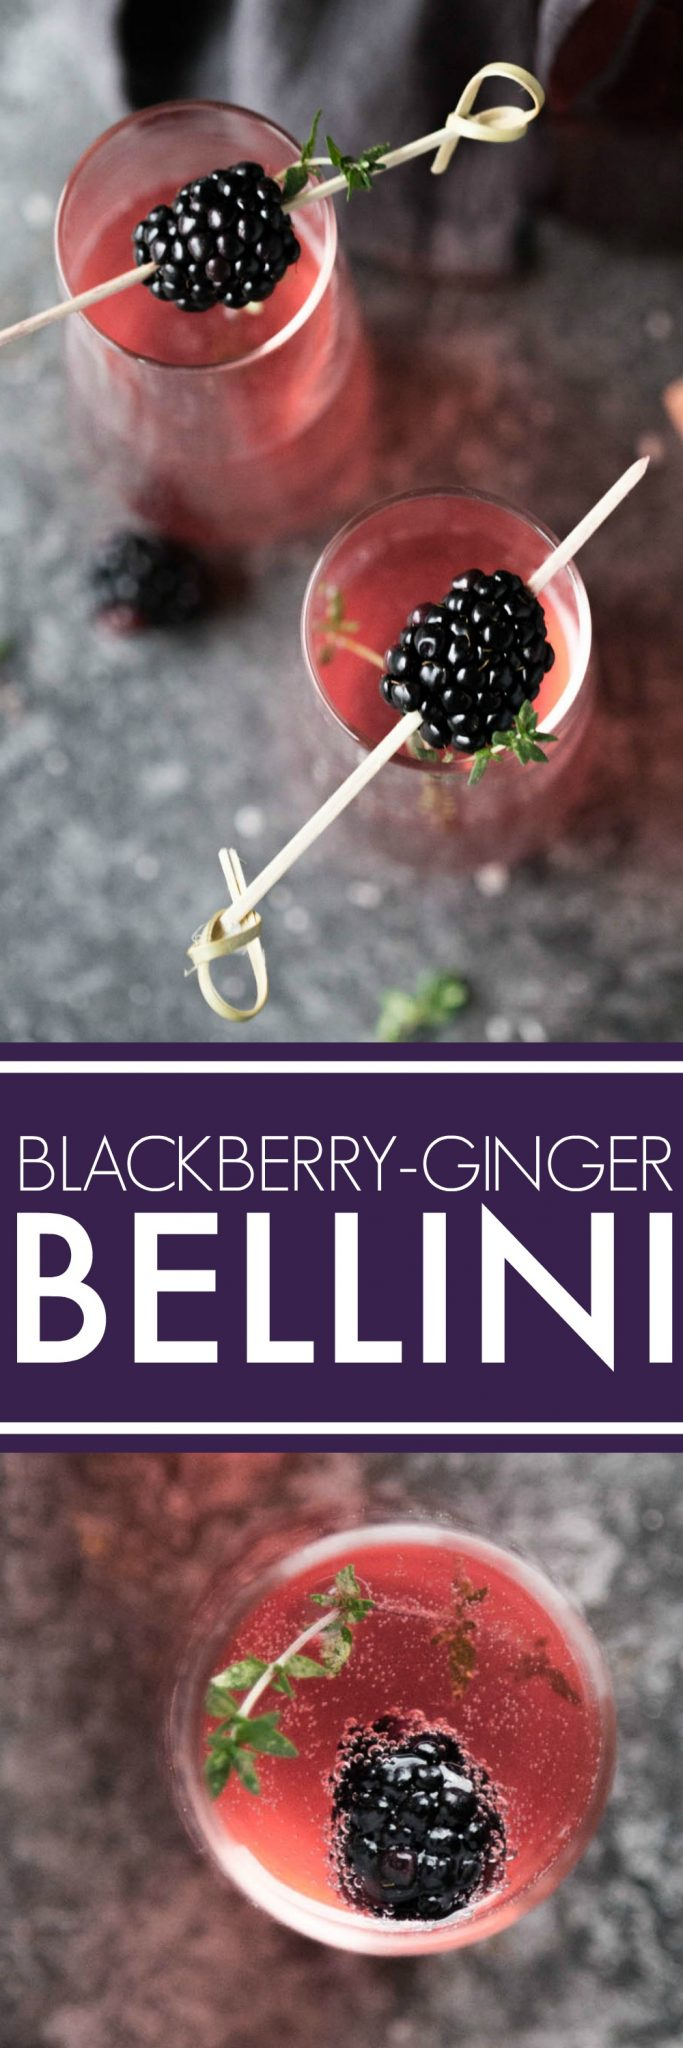 This Blackberry Ginger Bellini is a festive sparkling cocktail that's perfect for brunch or festive holiday parties.